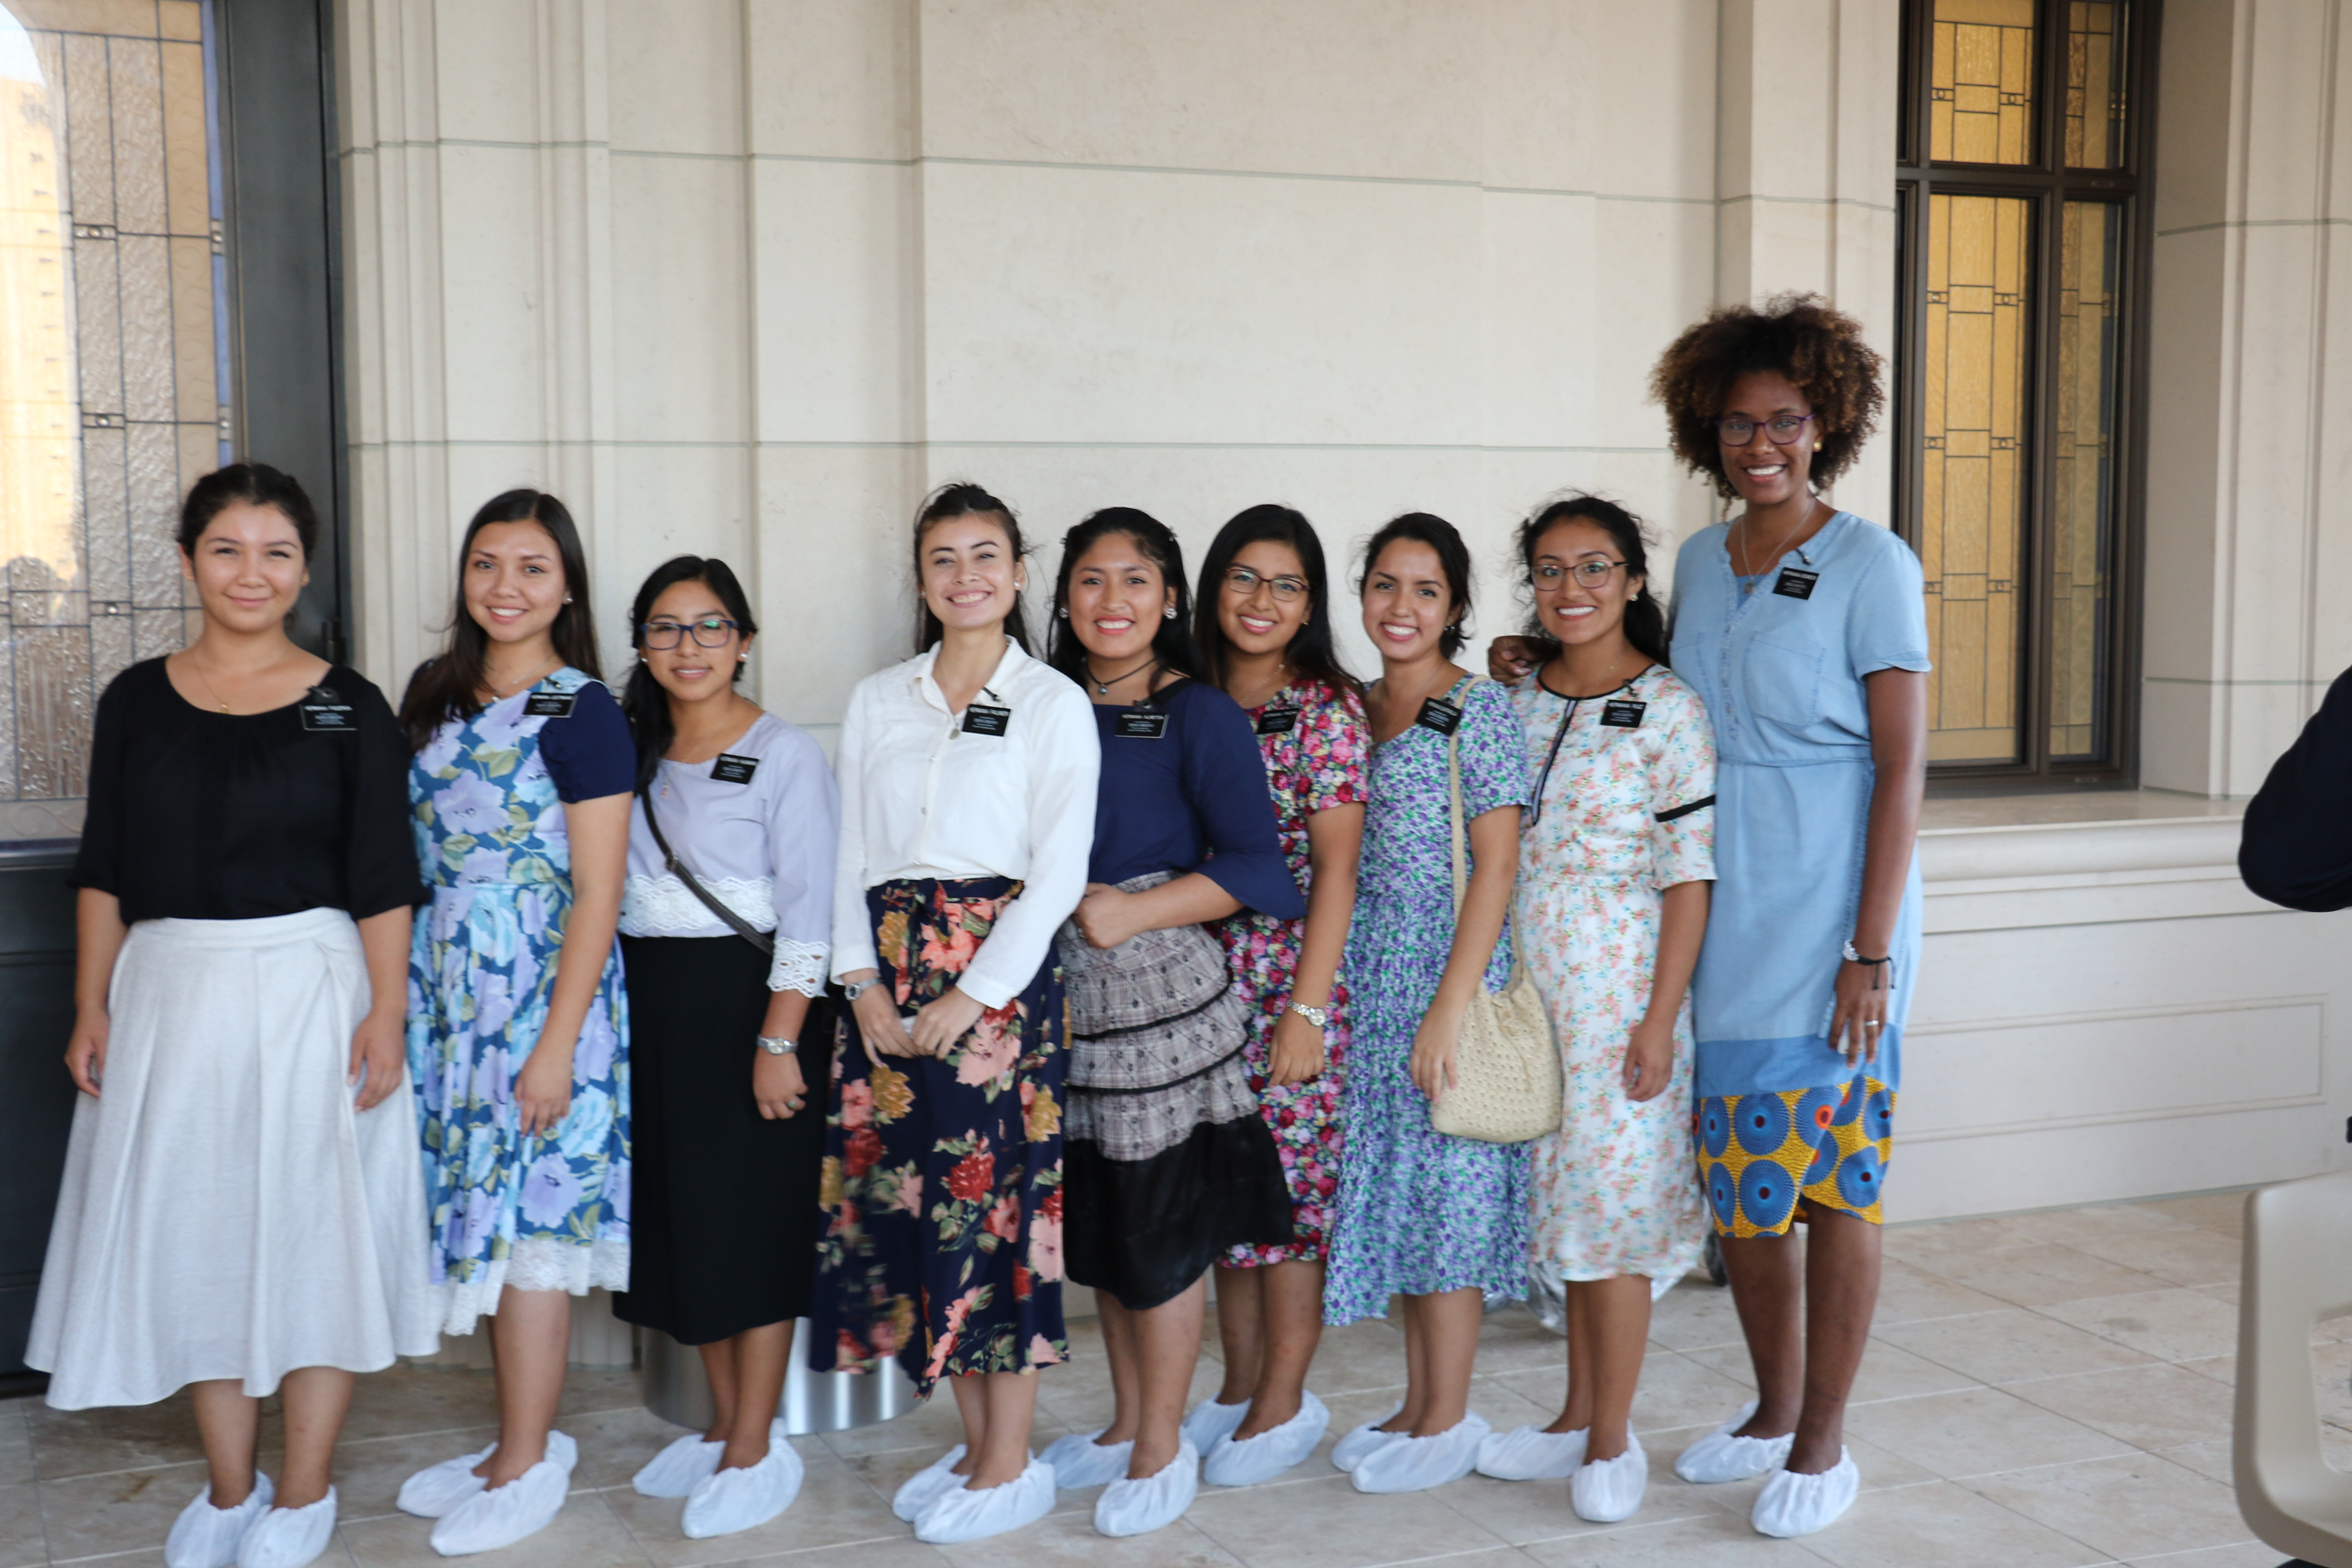 Sister missionaries wait outside the Barranquilla Colombia Temple on Dec. 9, 2018, following the dedication. The sister were helping to clean the temple following the ceremony.